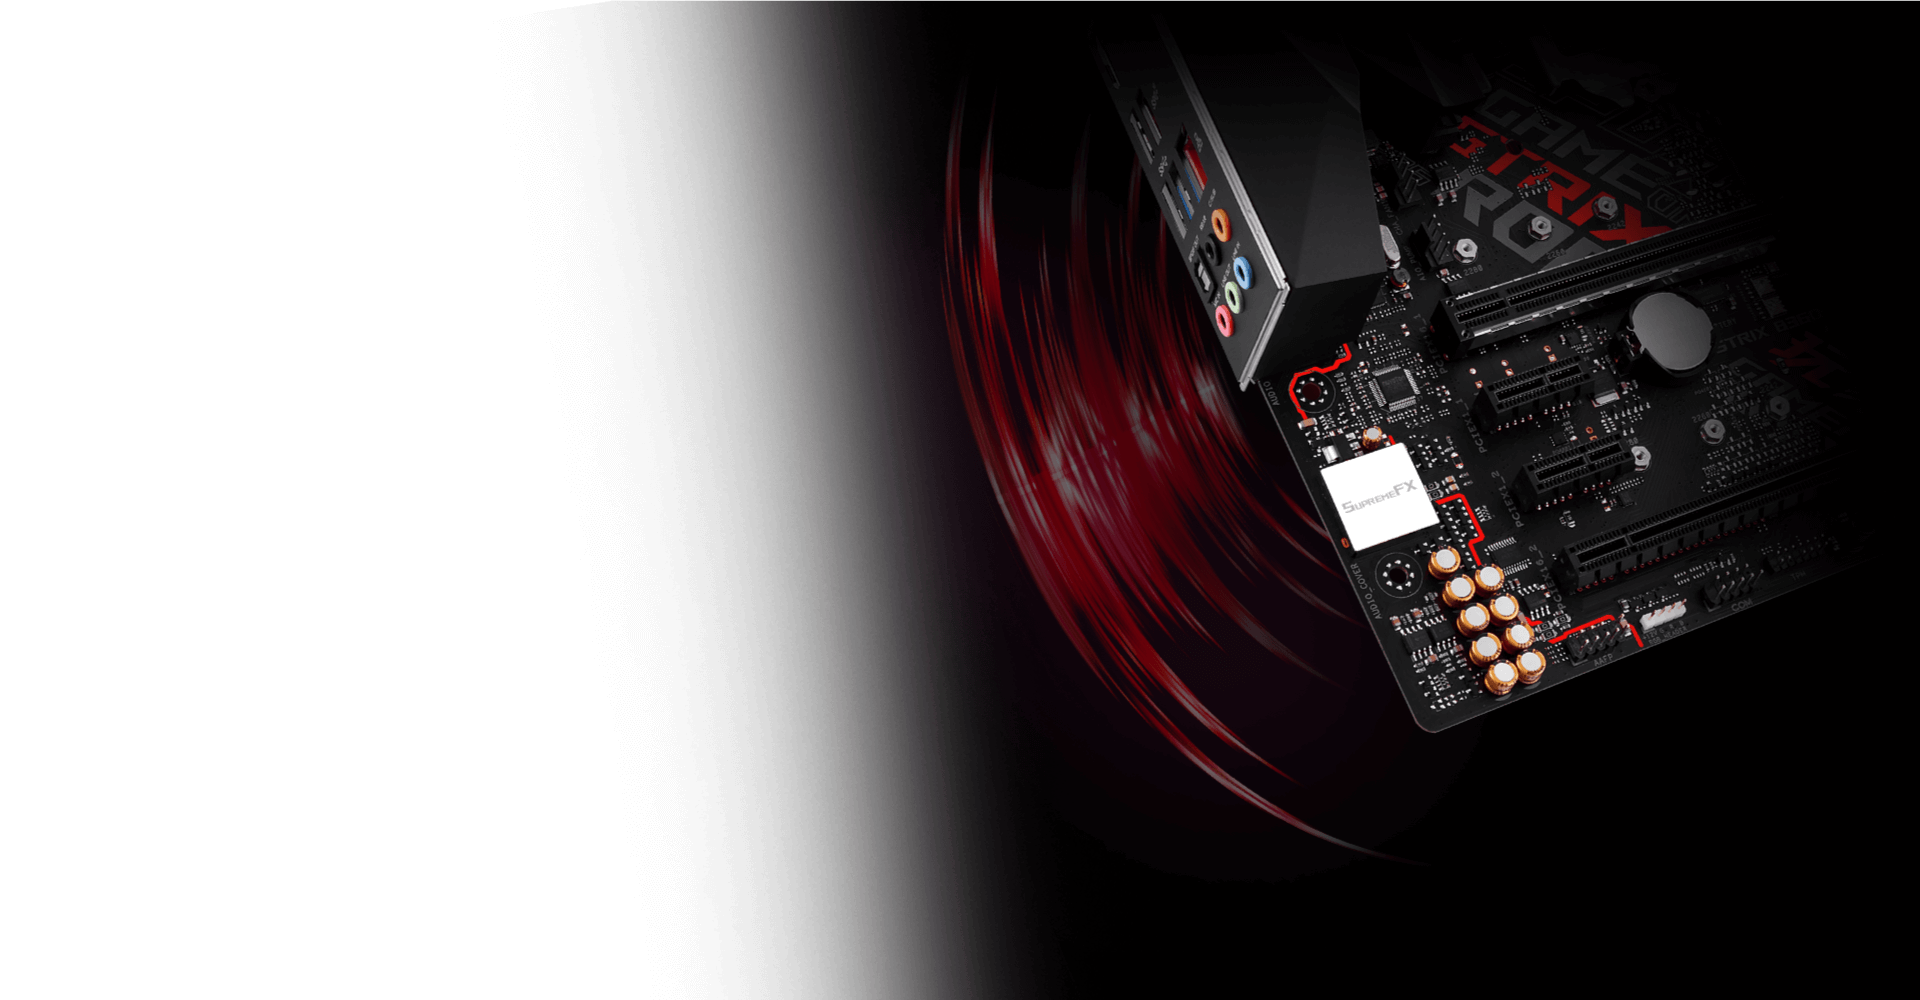 Rog Strix B360 G Gaming Motherboards Asus Usa Correspondence Of The Pins On Hdmi To Dvid Cable High Quality Japanese Made Components Produce Warm Natural Audio With Exceptional Clarity And Fidelity